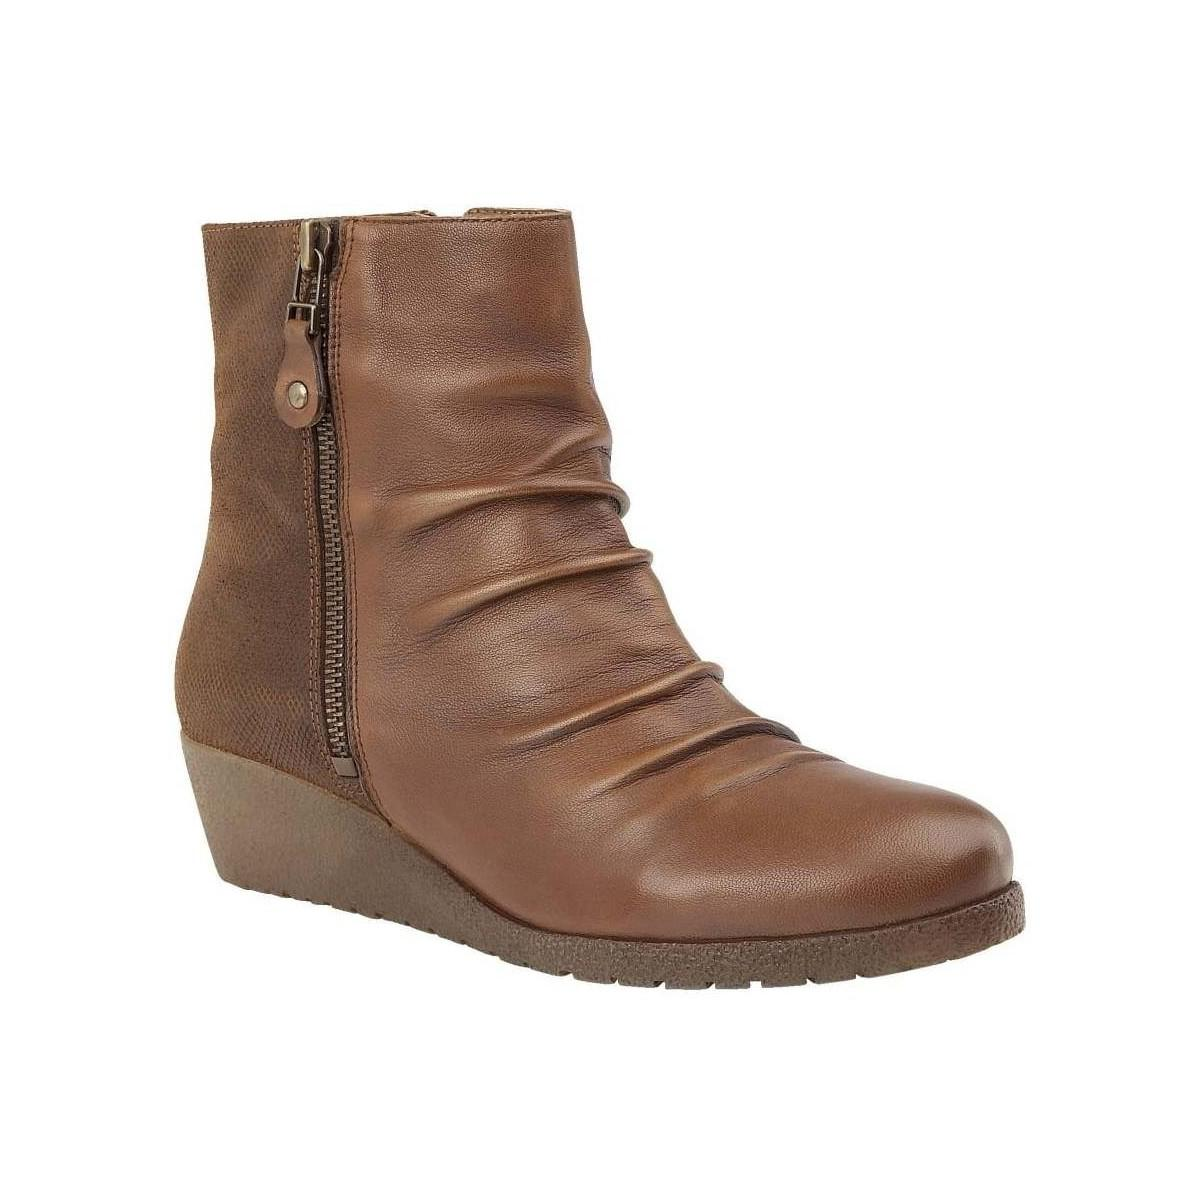 Lotus Sonora Womens Wedge Heel Ankle Boots Women's Low Ankle Boots In Brown